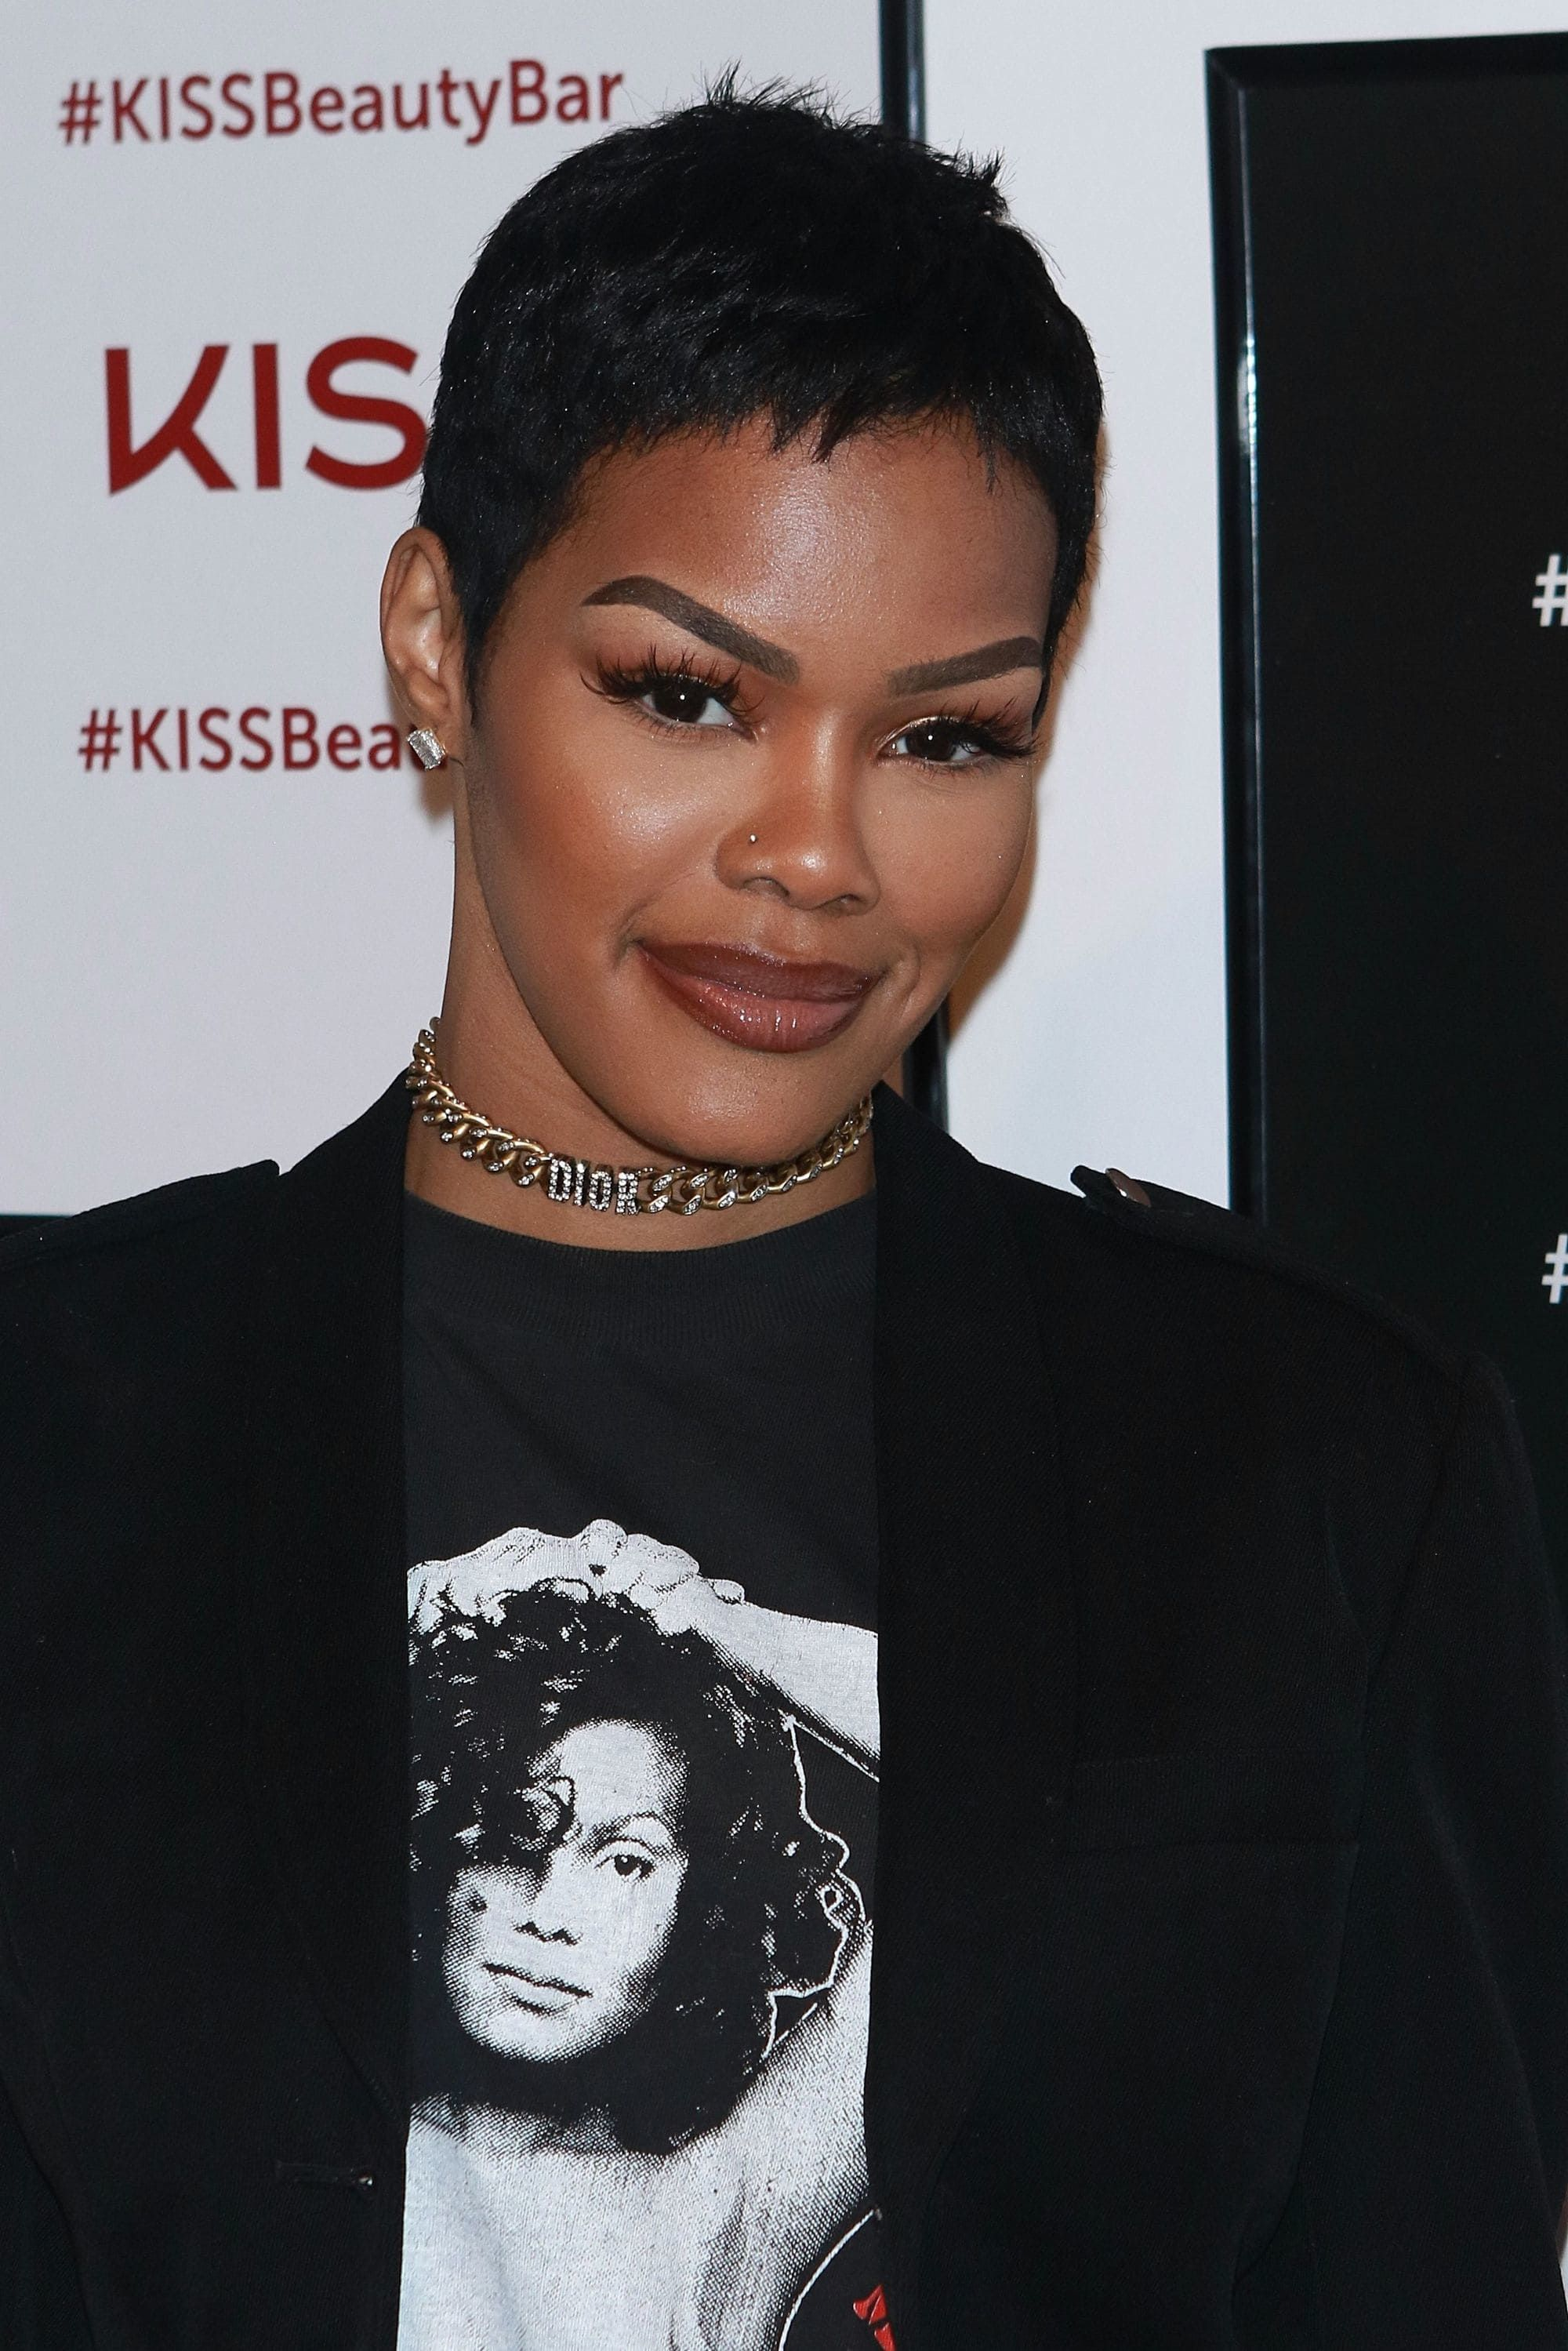 teyana taylor with short pixie haircut on the red carpet